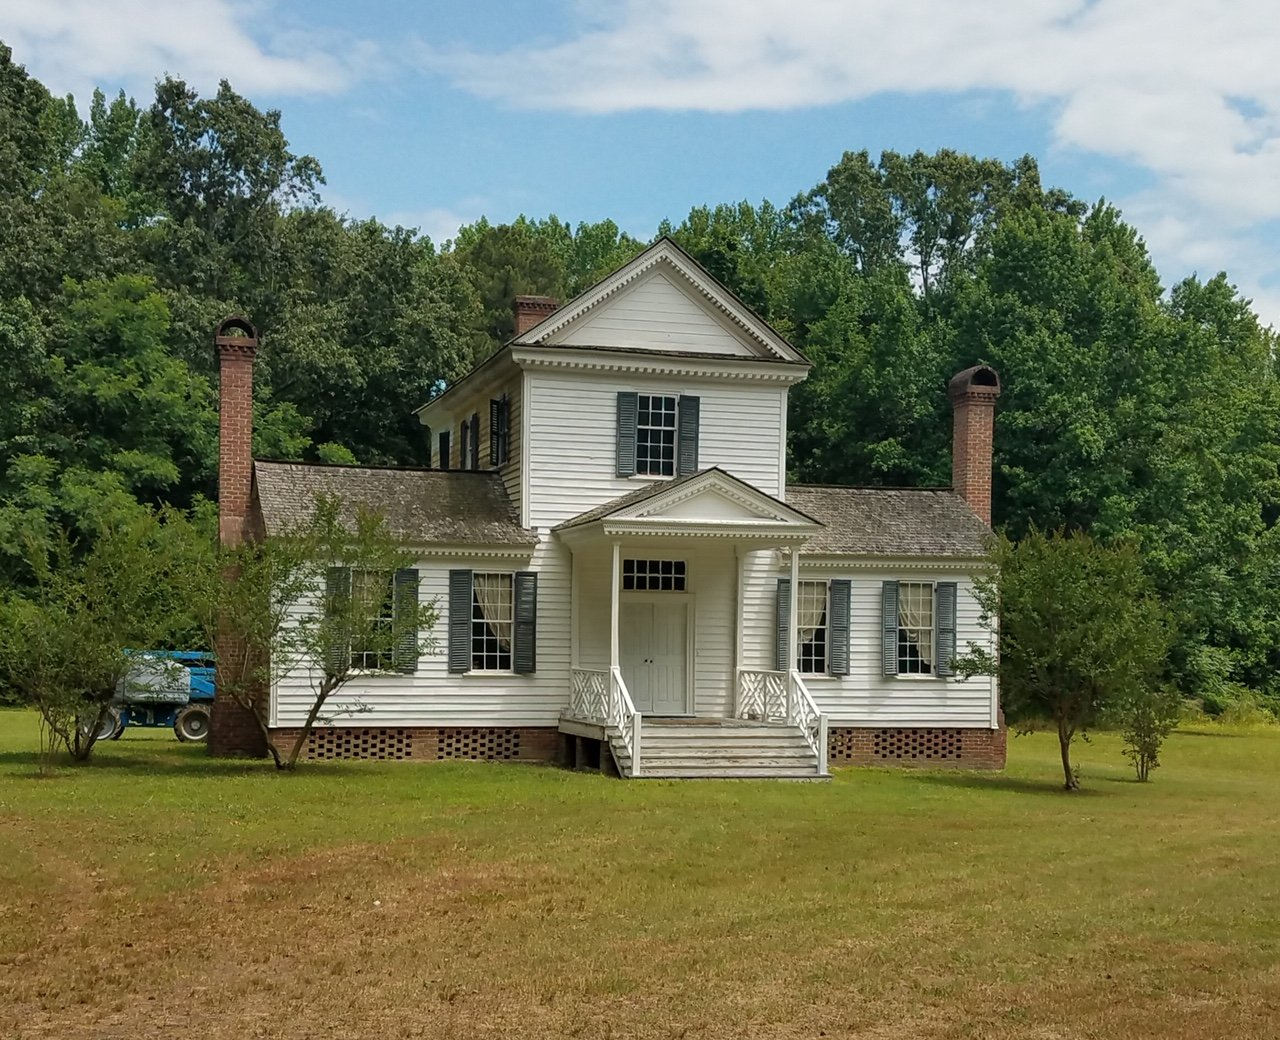 Sally-Billy House - Plantation house that was originally outside the town of Scotland Neck. (located approximately 20 miles from Halifax, also on the Roanoke River) The house was relocated to its currently location and restored in the 1970s.